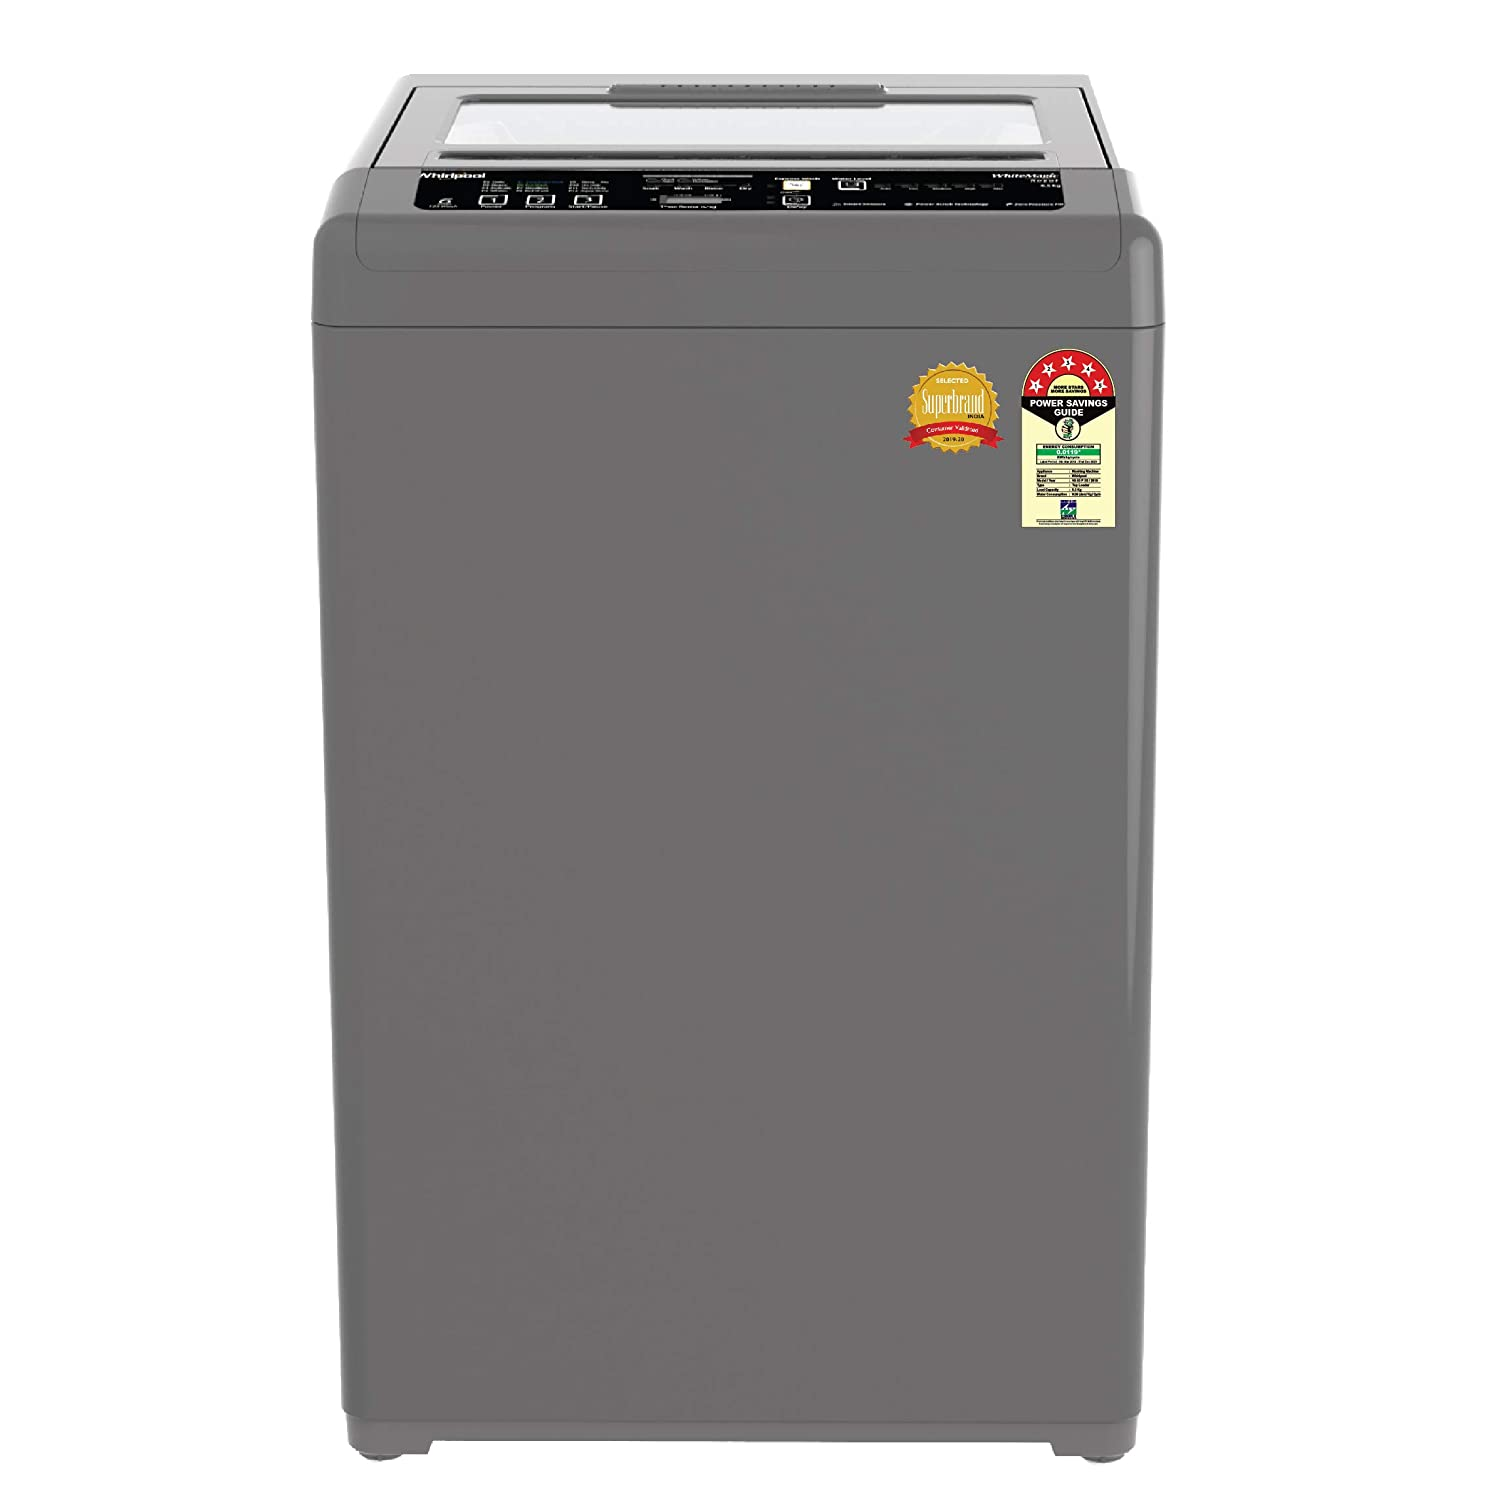 Whirlpool 6.5 kg 5 Star Fully-Automatic Top Loading Washing Machine